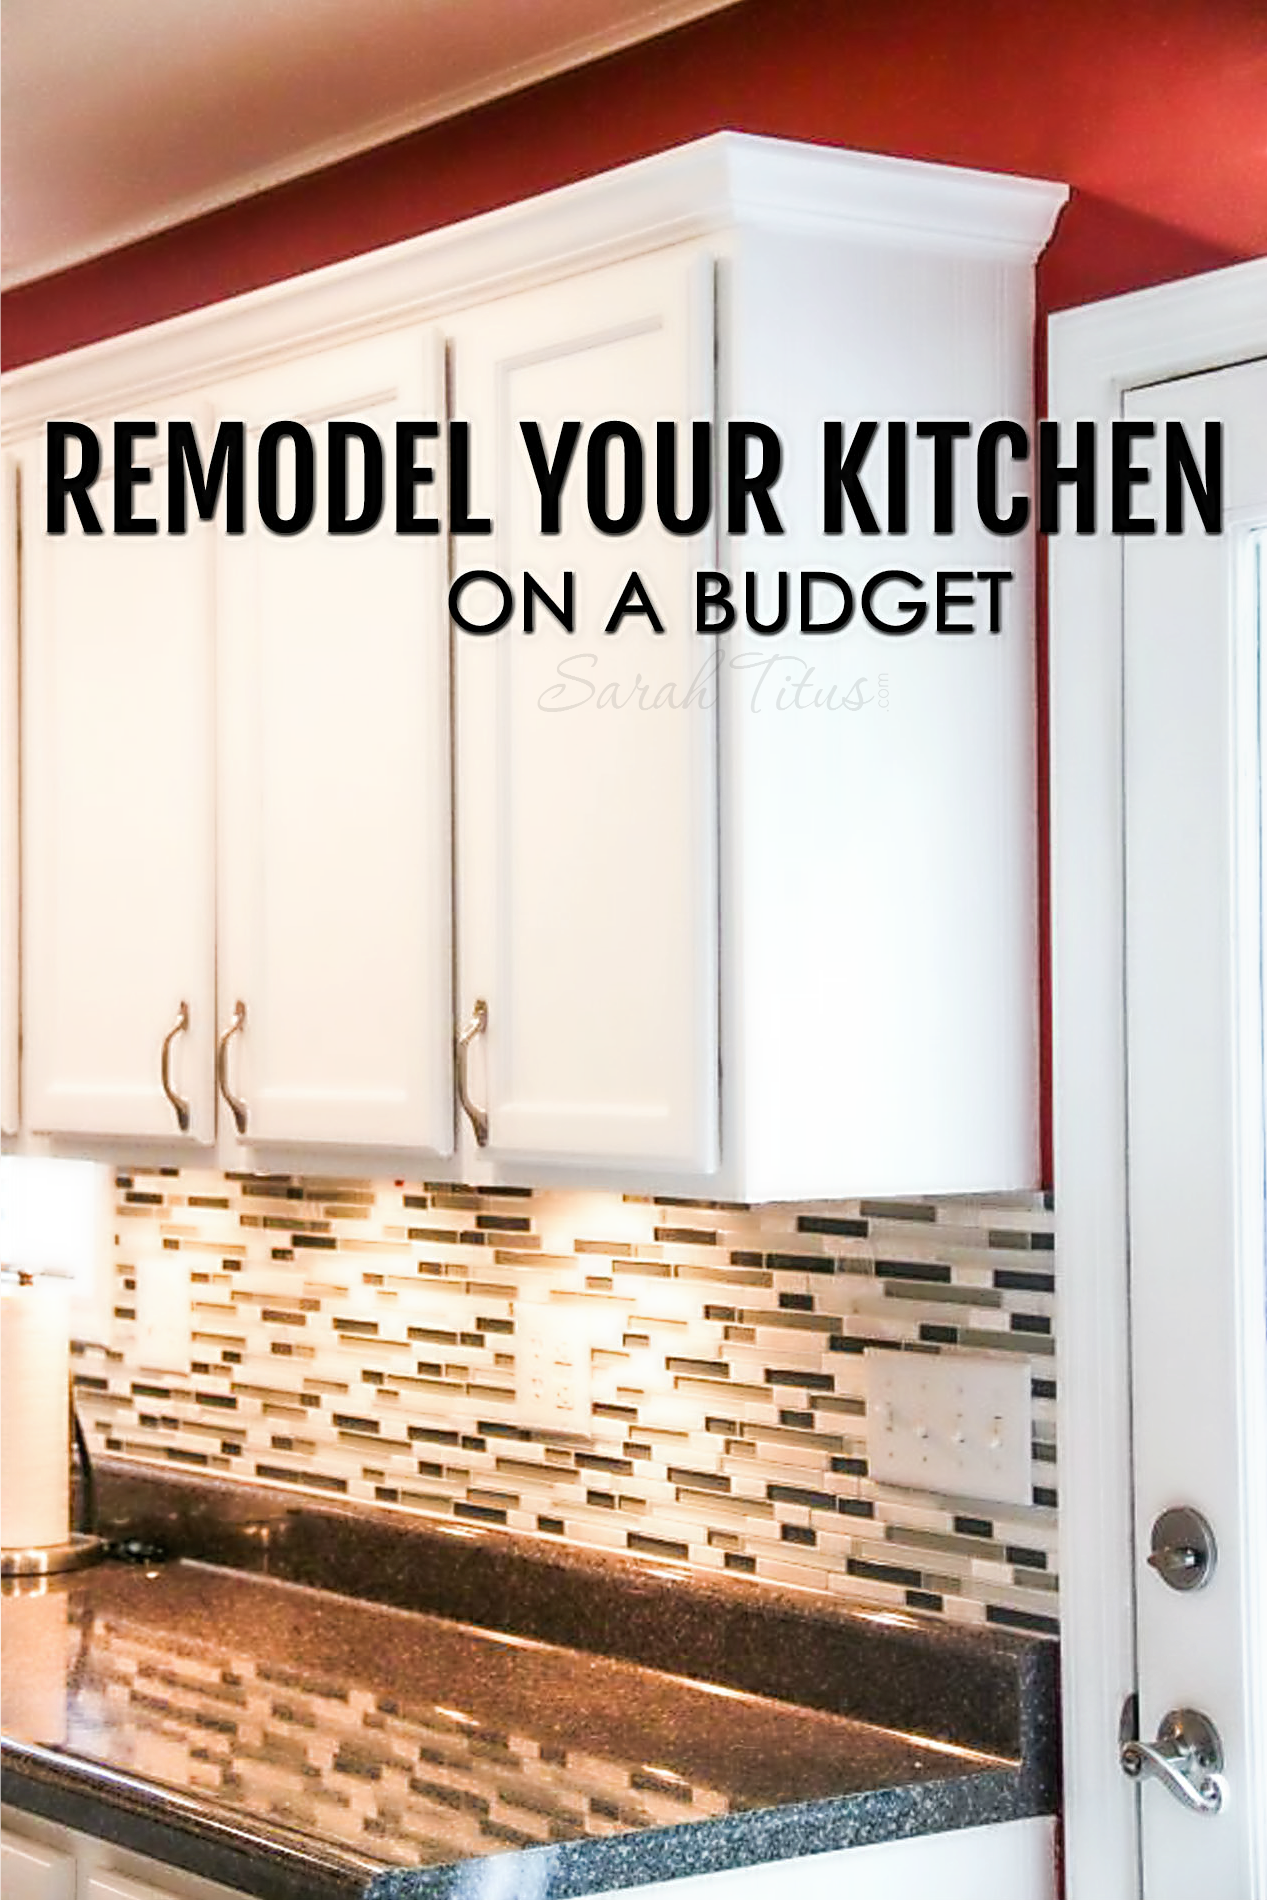 How To Remodel Your Kitchen On A Budget - Sarah Titus